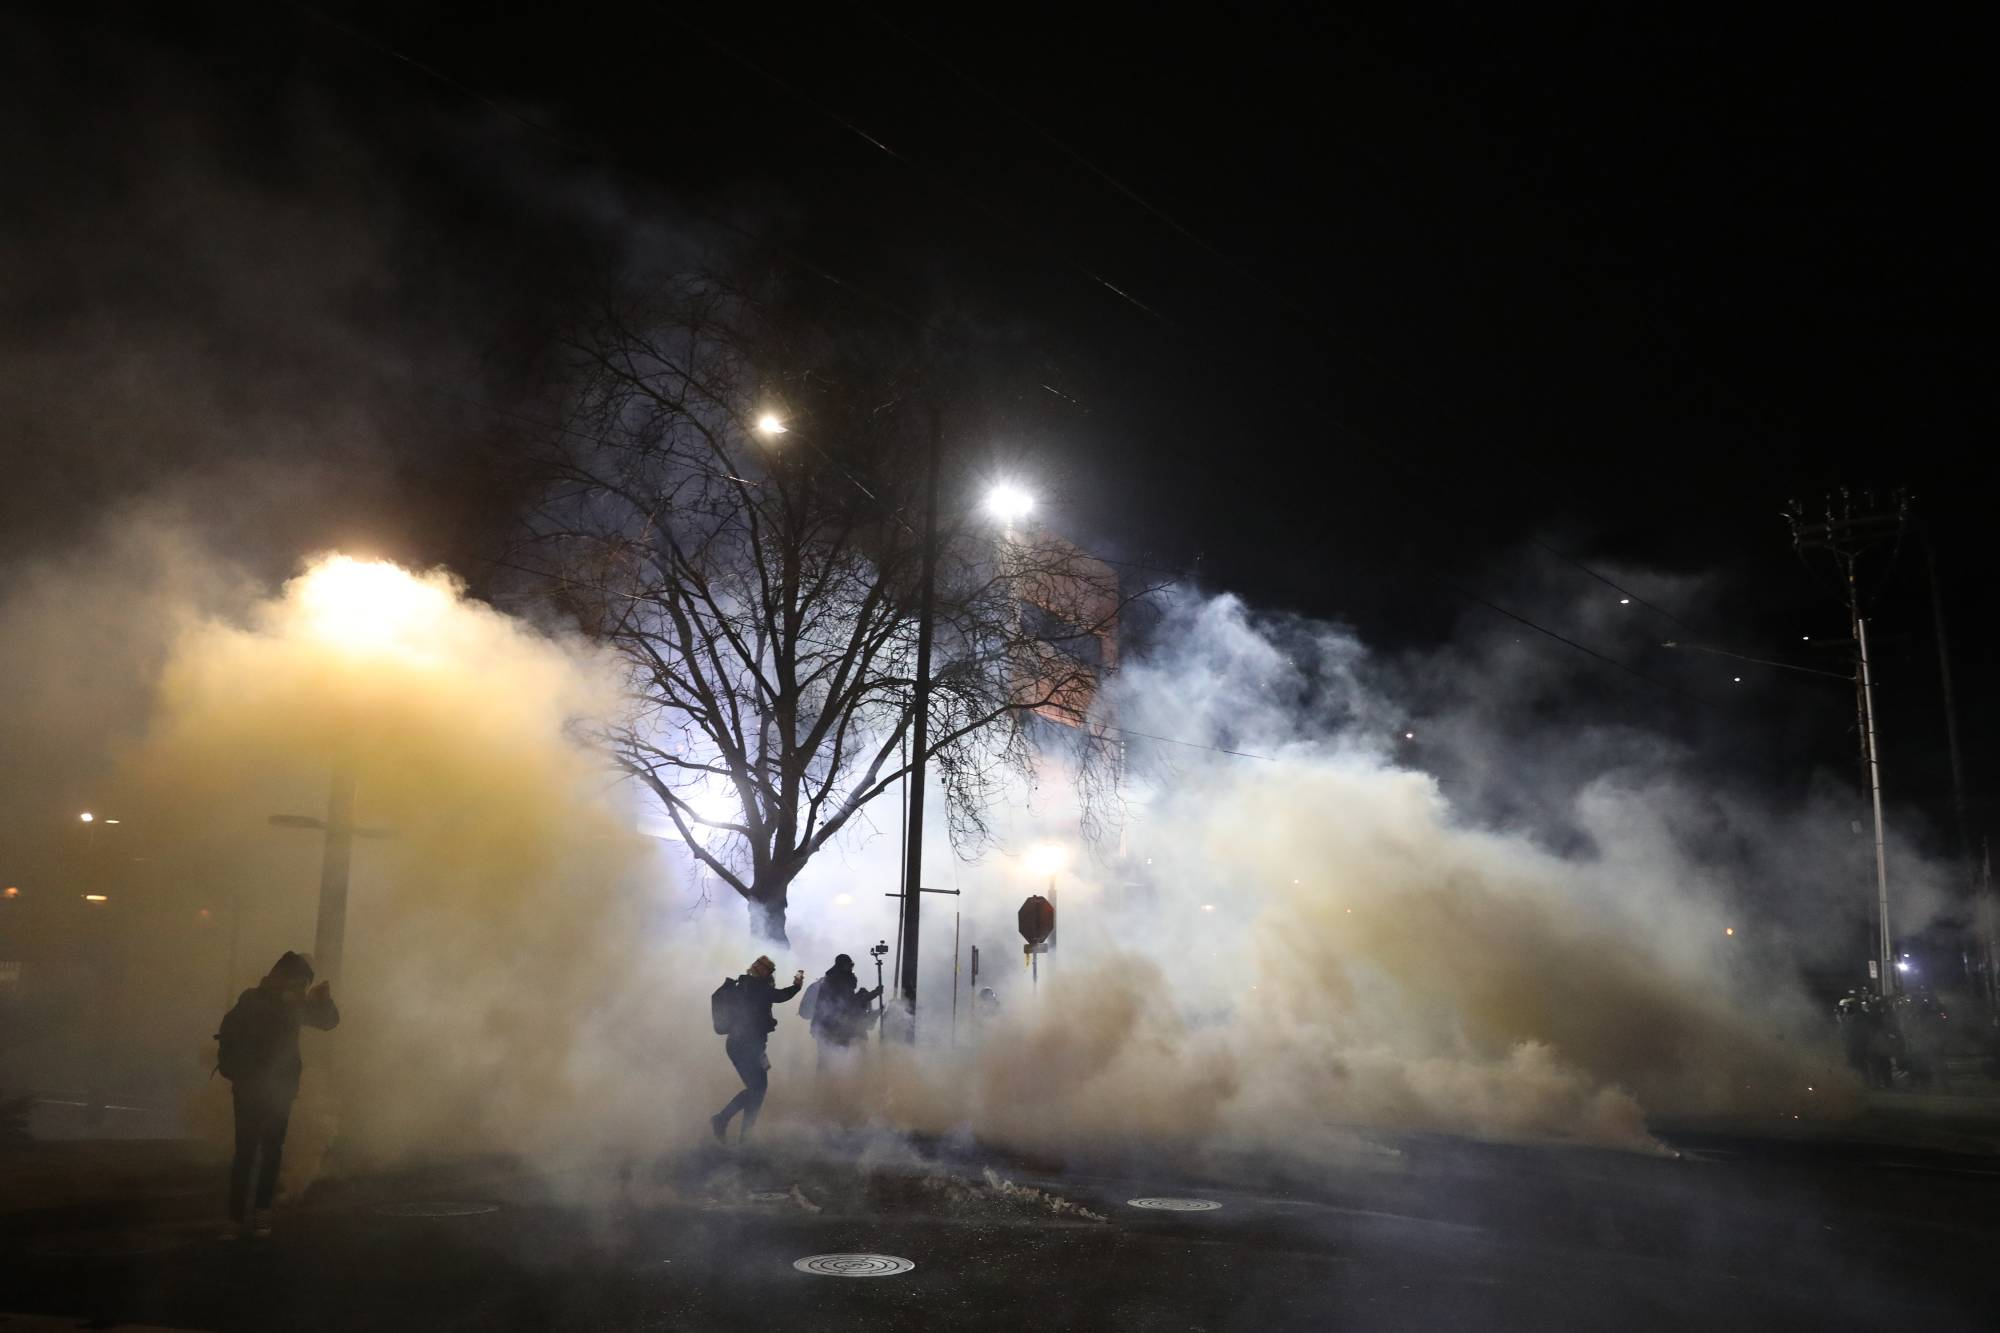 Law enforcement deploy tear gas Wednesday at a protest outside an Immigration and Customs Enforcement building in Portland, Oregon, on Wednesday. | ALISHA JUCEVIC / THE NEW YORK TIMES